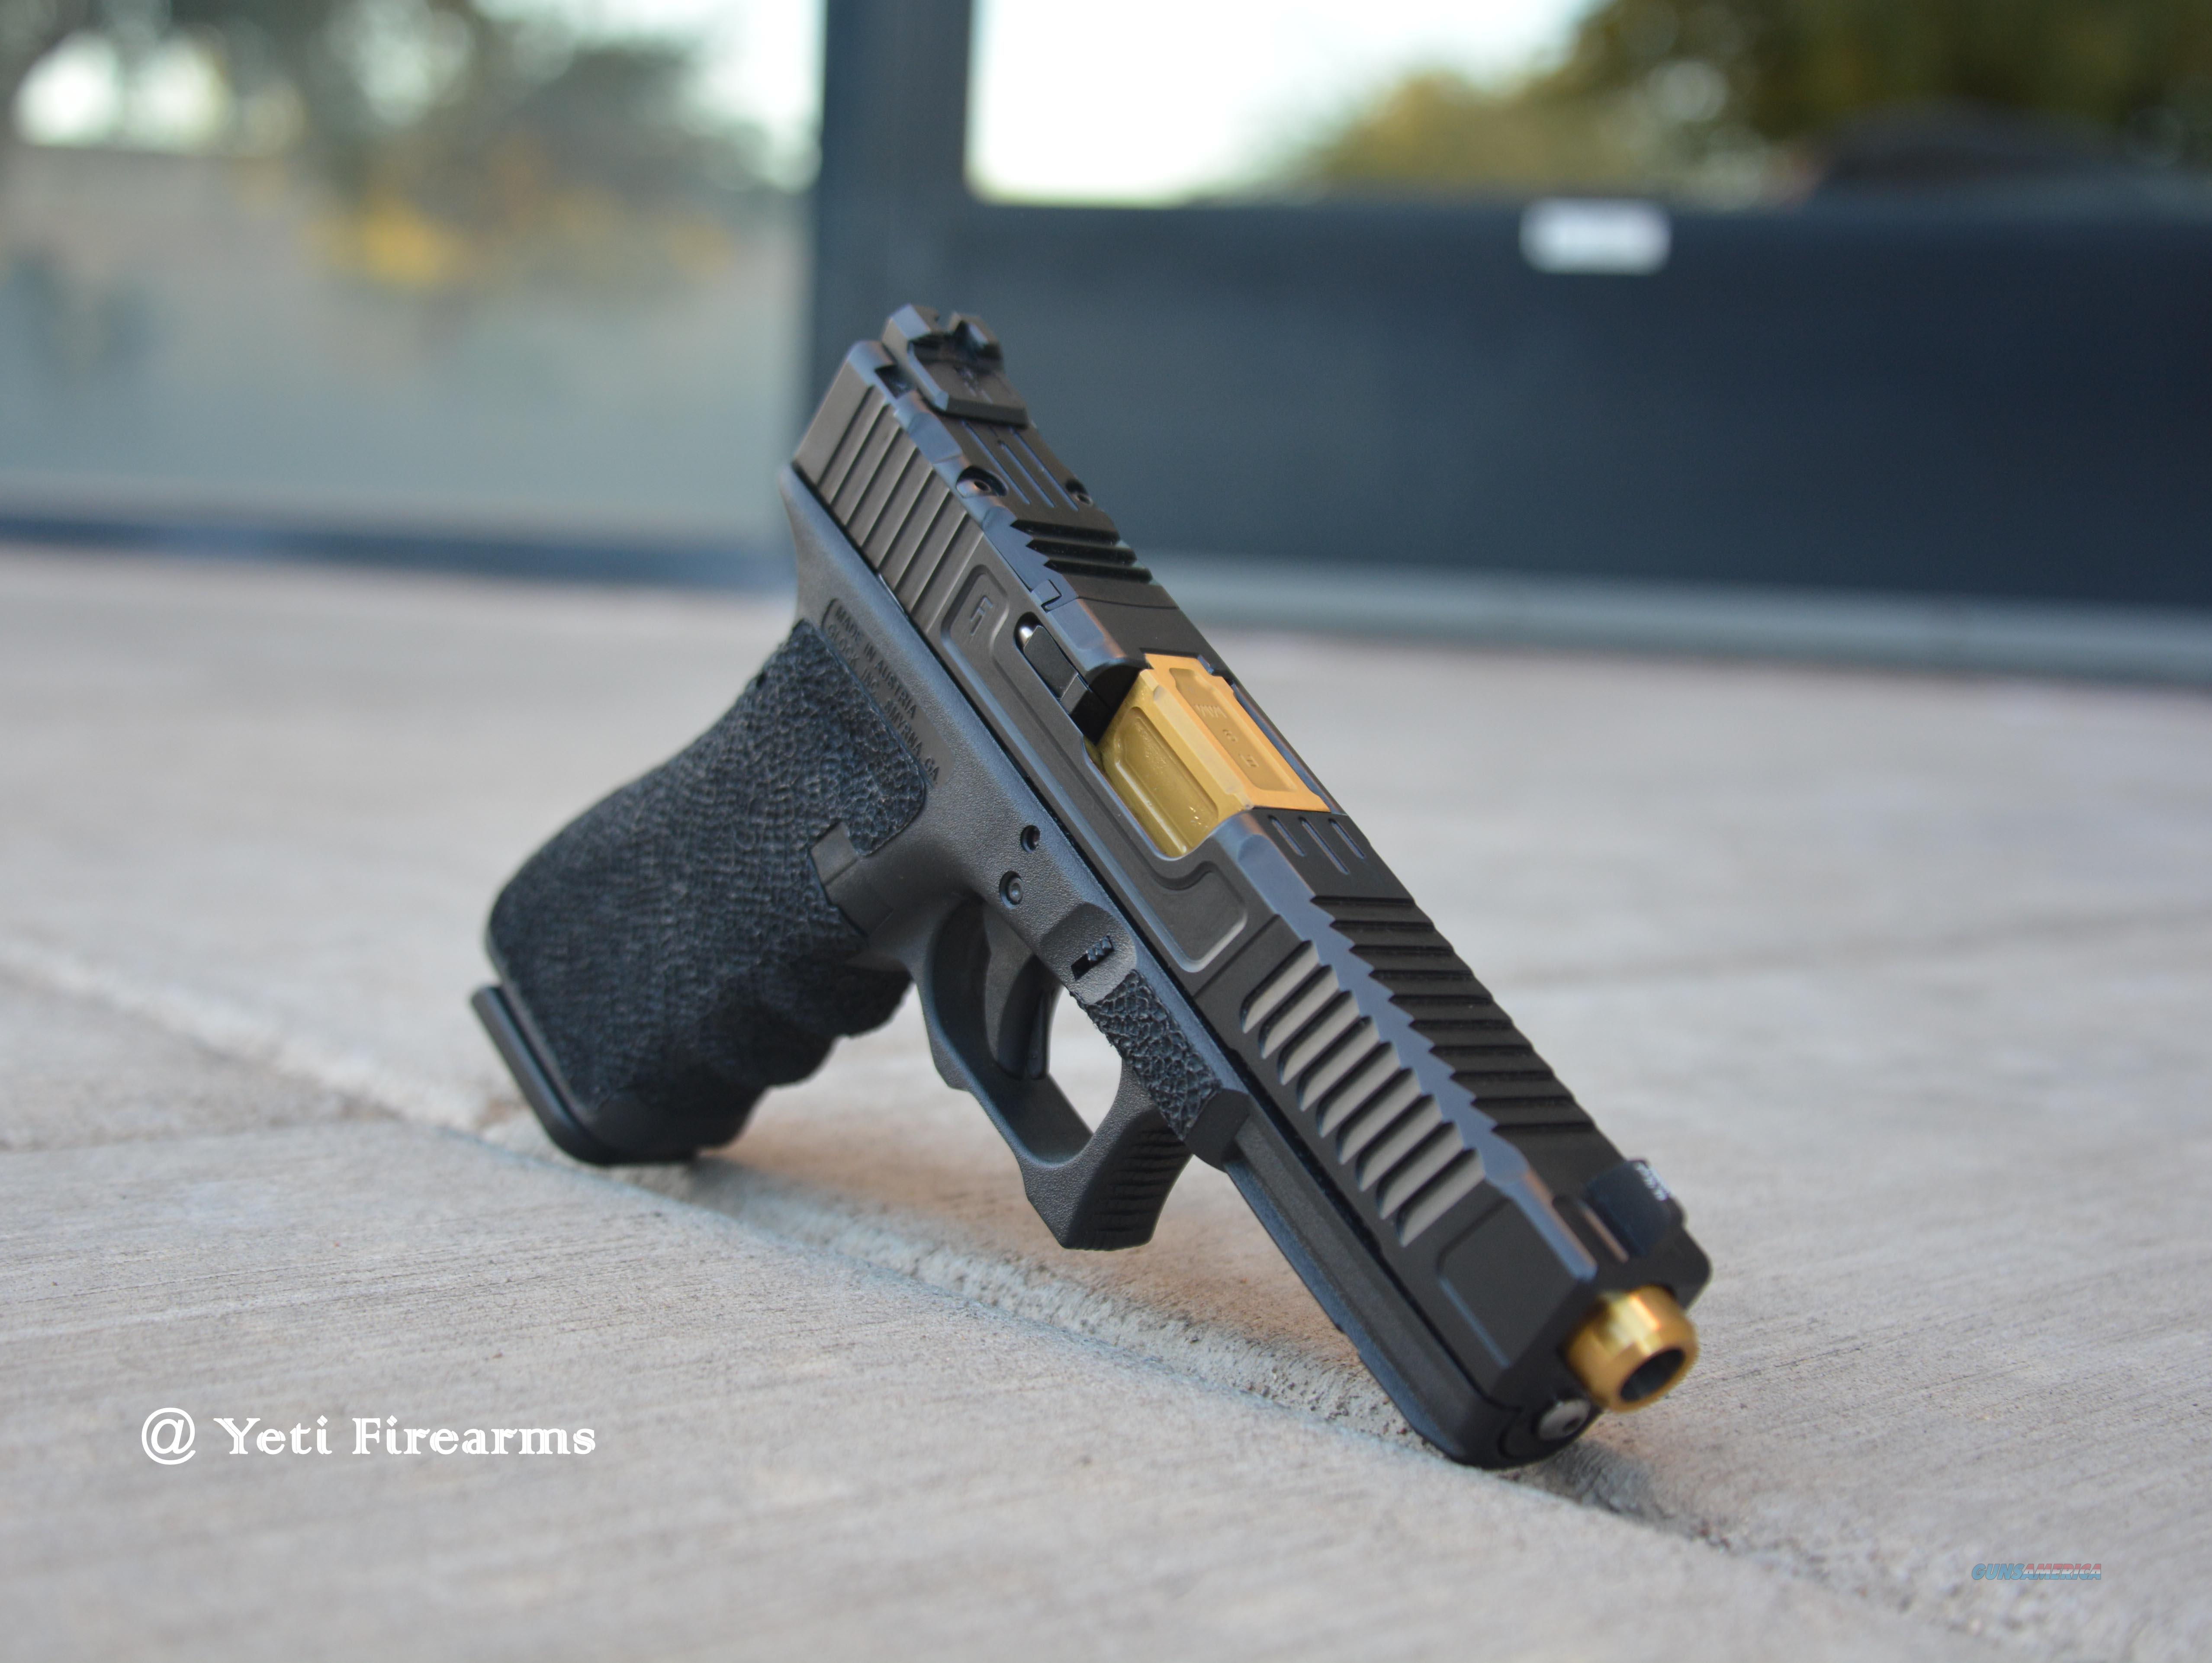 Fowler Industries MK1 Glock 17 G3 9mm TiN Trijicon  Guns > Pistols > Glock Pistols > 17